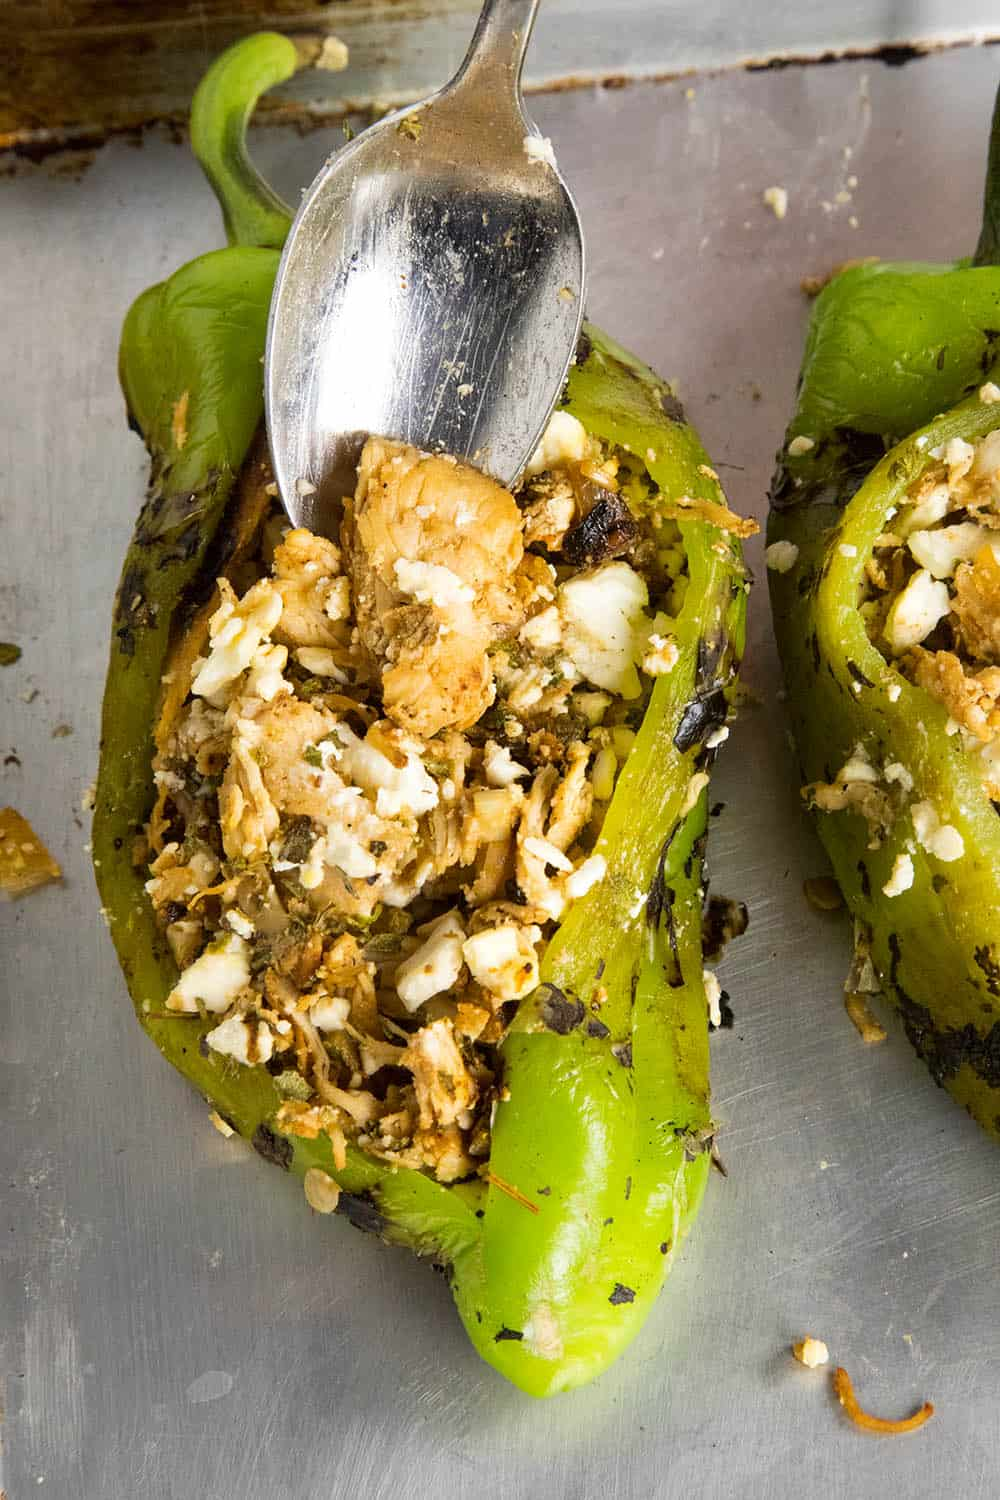 Stuffing the Anaheim peppers